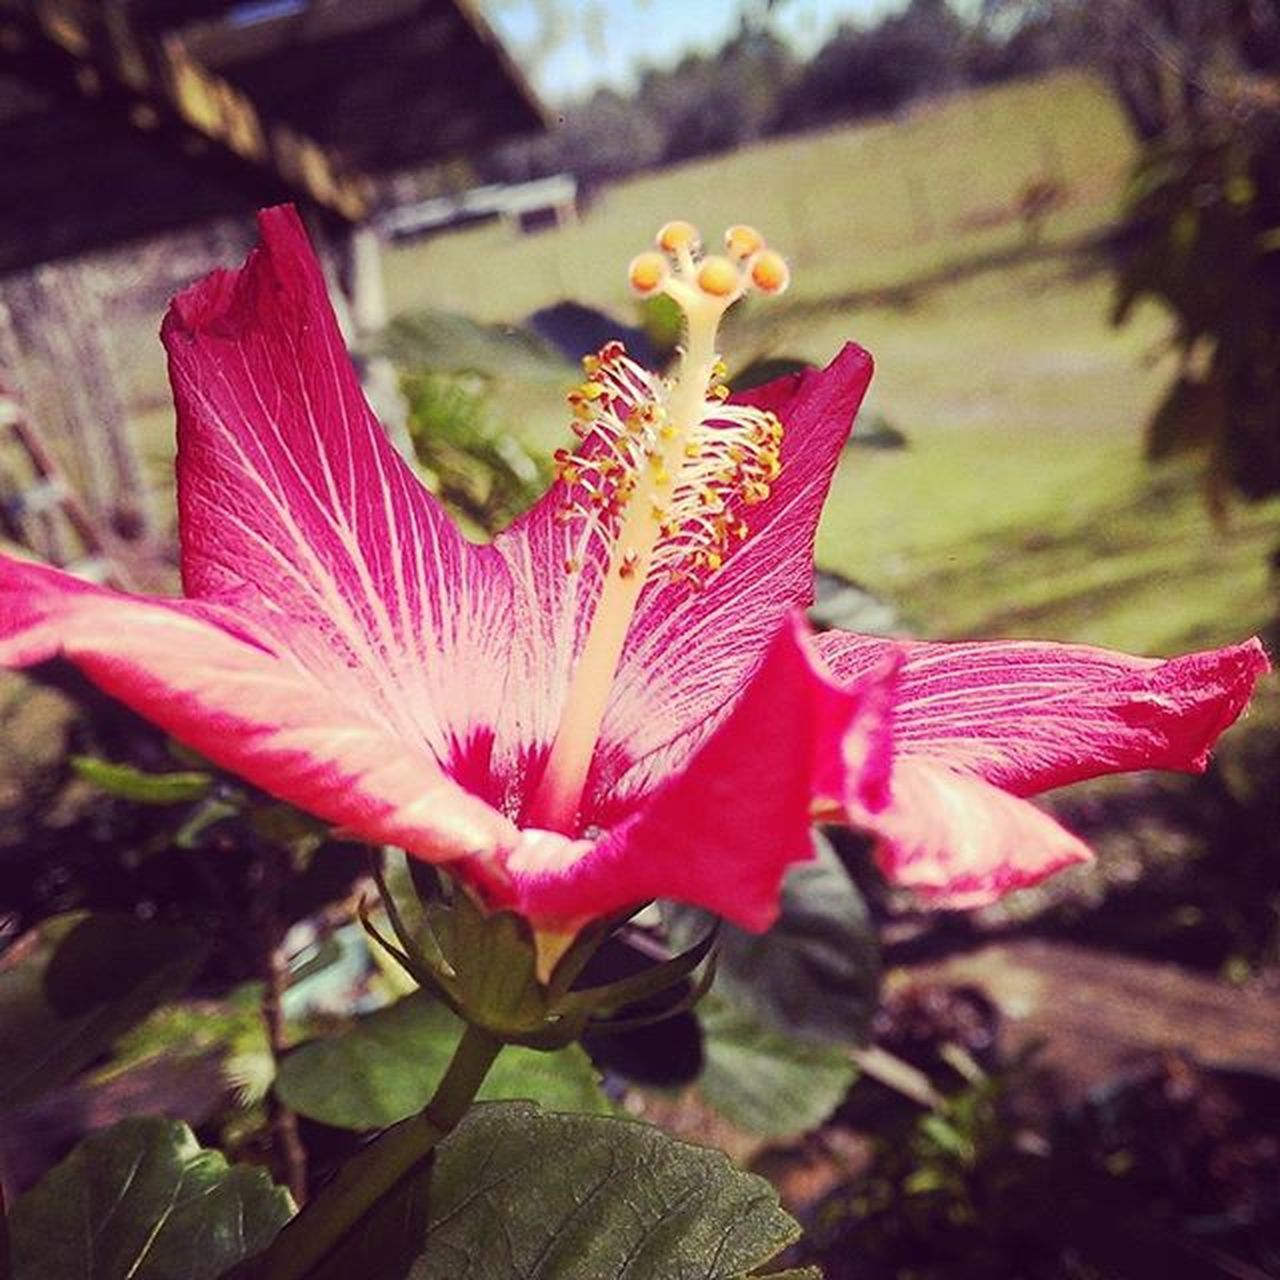 flower, growth, petal, nature, plant, fragility, beauty in nature, freshness, flower head, day, no people, close-up, pink color, outdoors, focus on foreground, stamen, insect, blooming, hibiscus, day lily